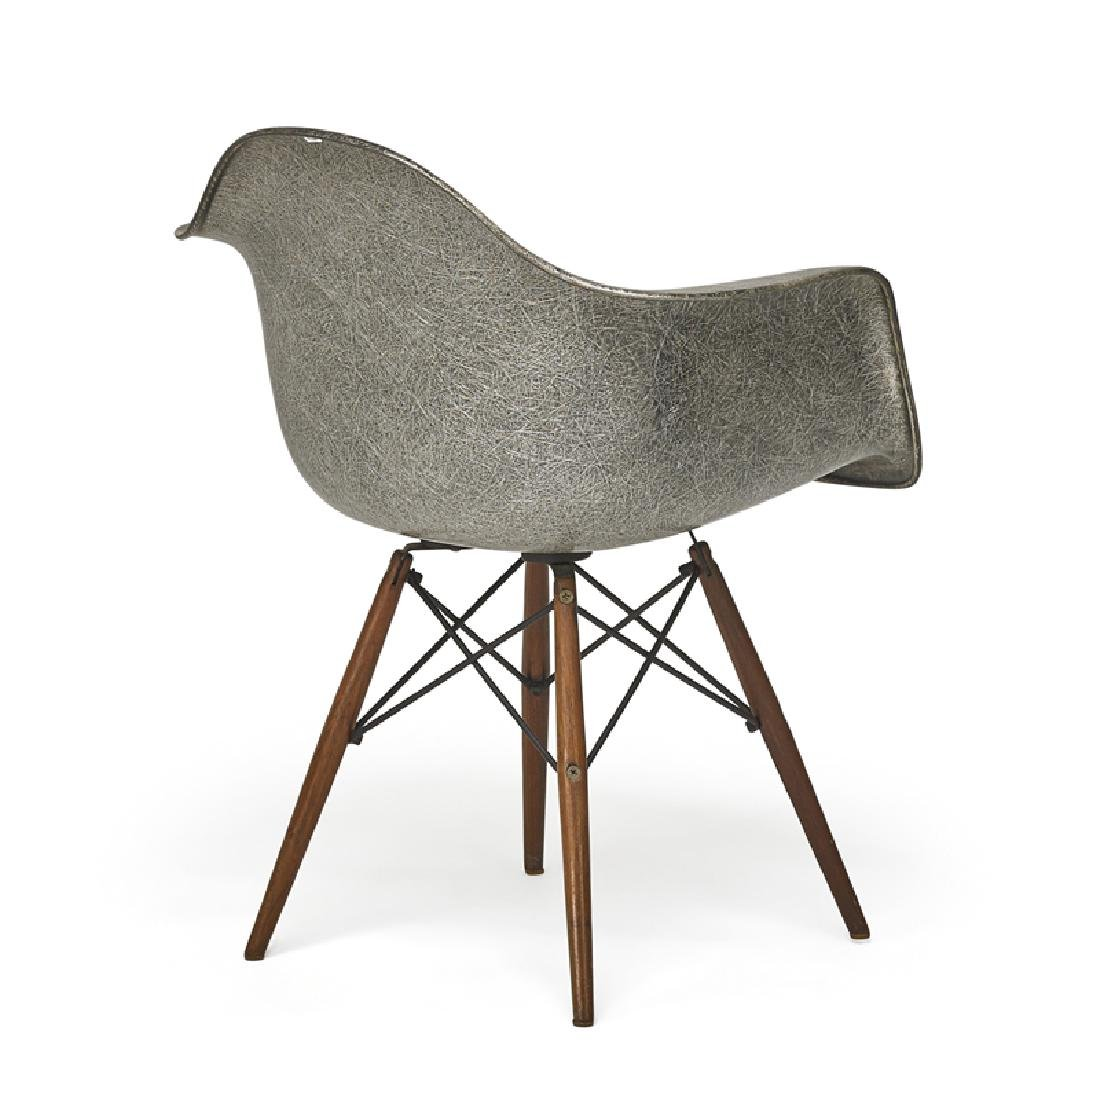 CHARLES & RAY EAMES; HERMAN MILLER/ZENITH Chair - 3